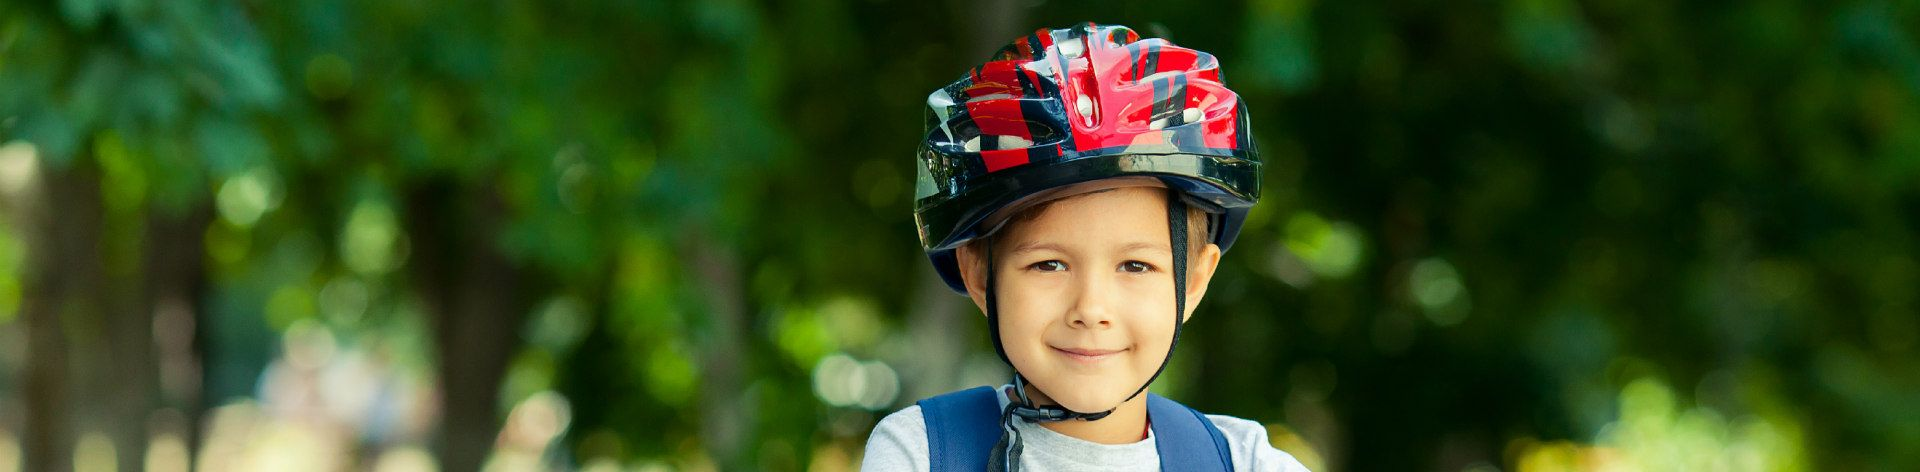 online bike helmets kids